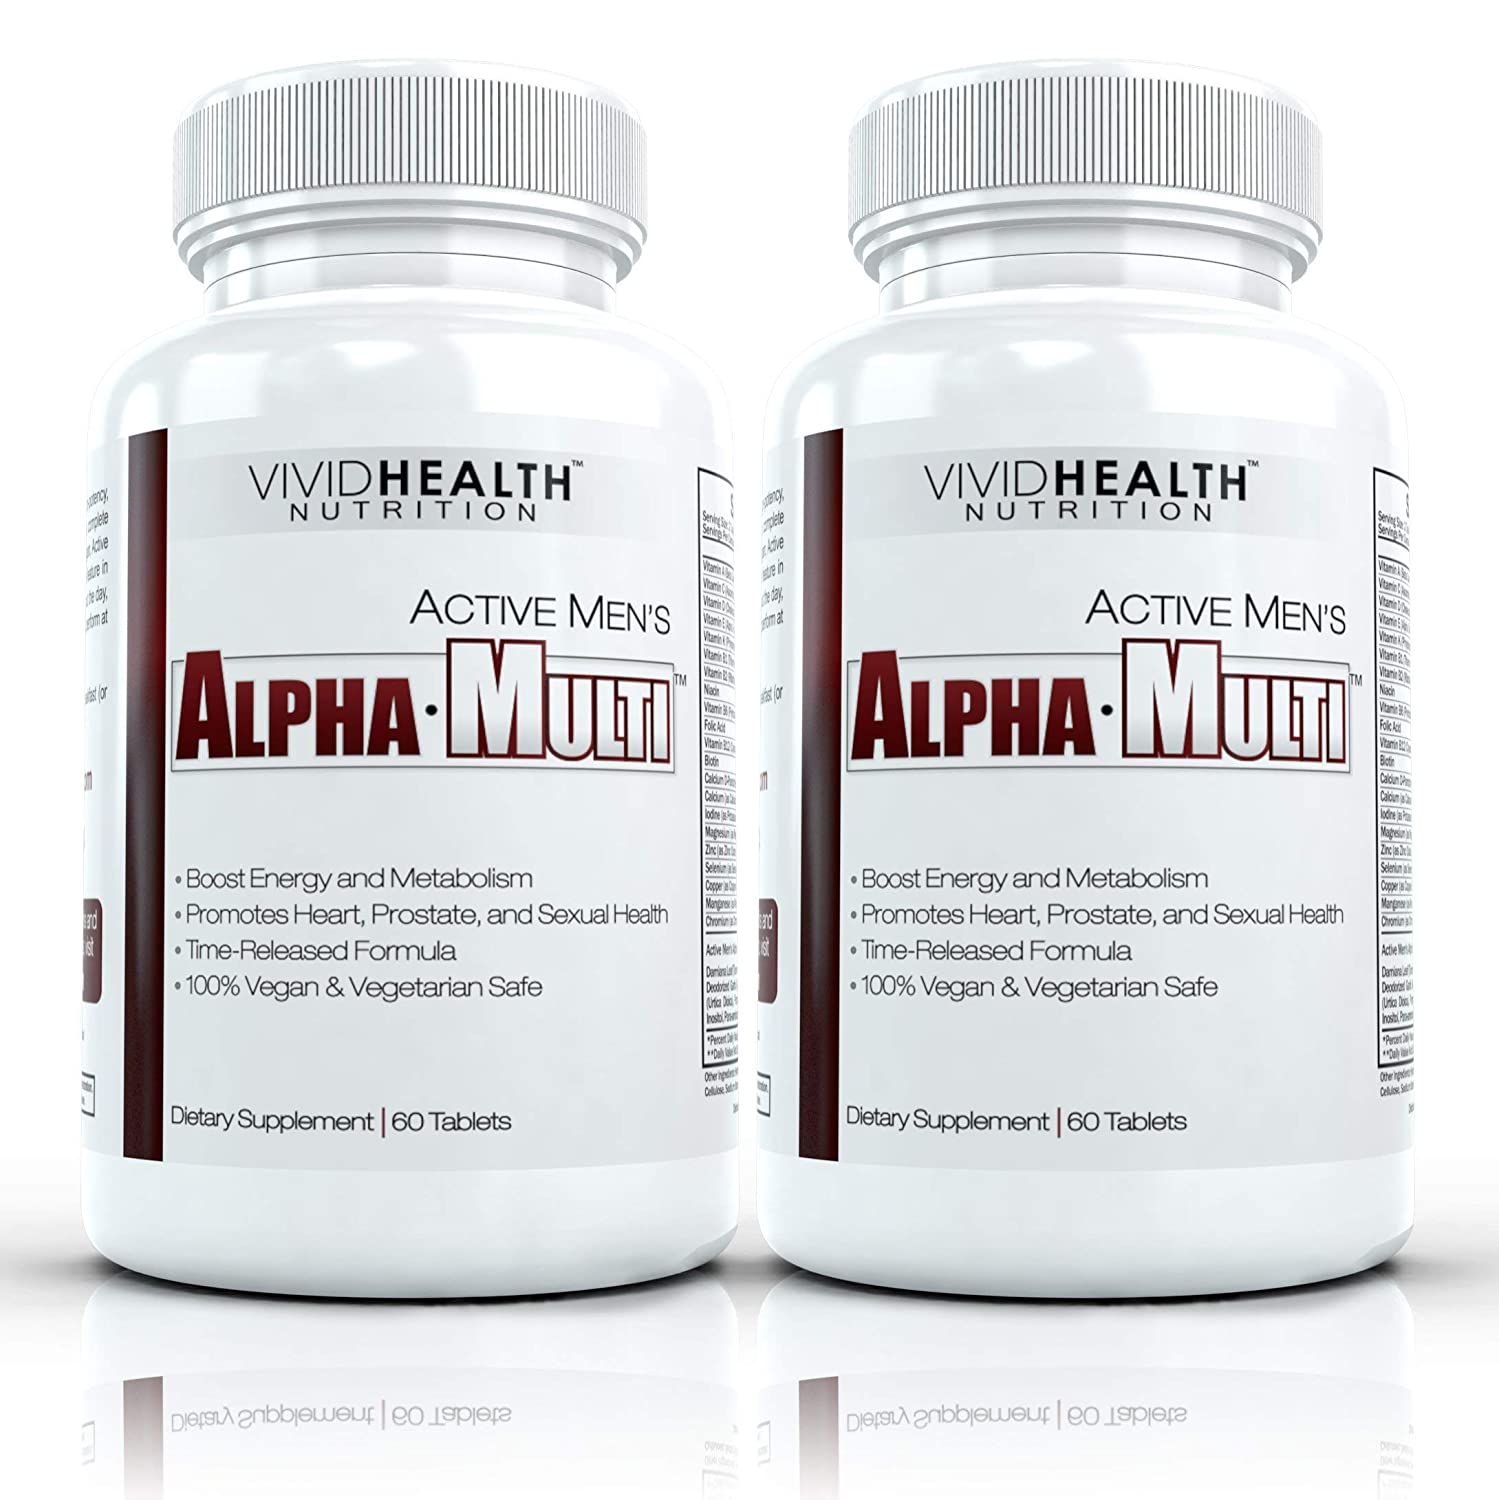 Active Men s Alpha-Multi – Complete One A Day Multivitamin for Men Supports Prostate Cardiovascular Health with Vitamin D, A, C, E, B12 Boost Energy, Libido, Virility 2 Bottles, 60 Tabs Each